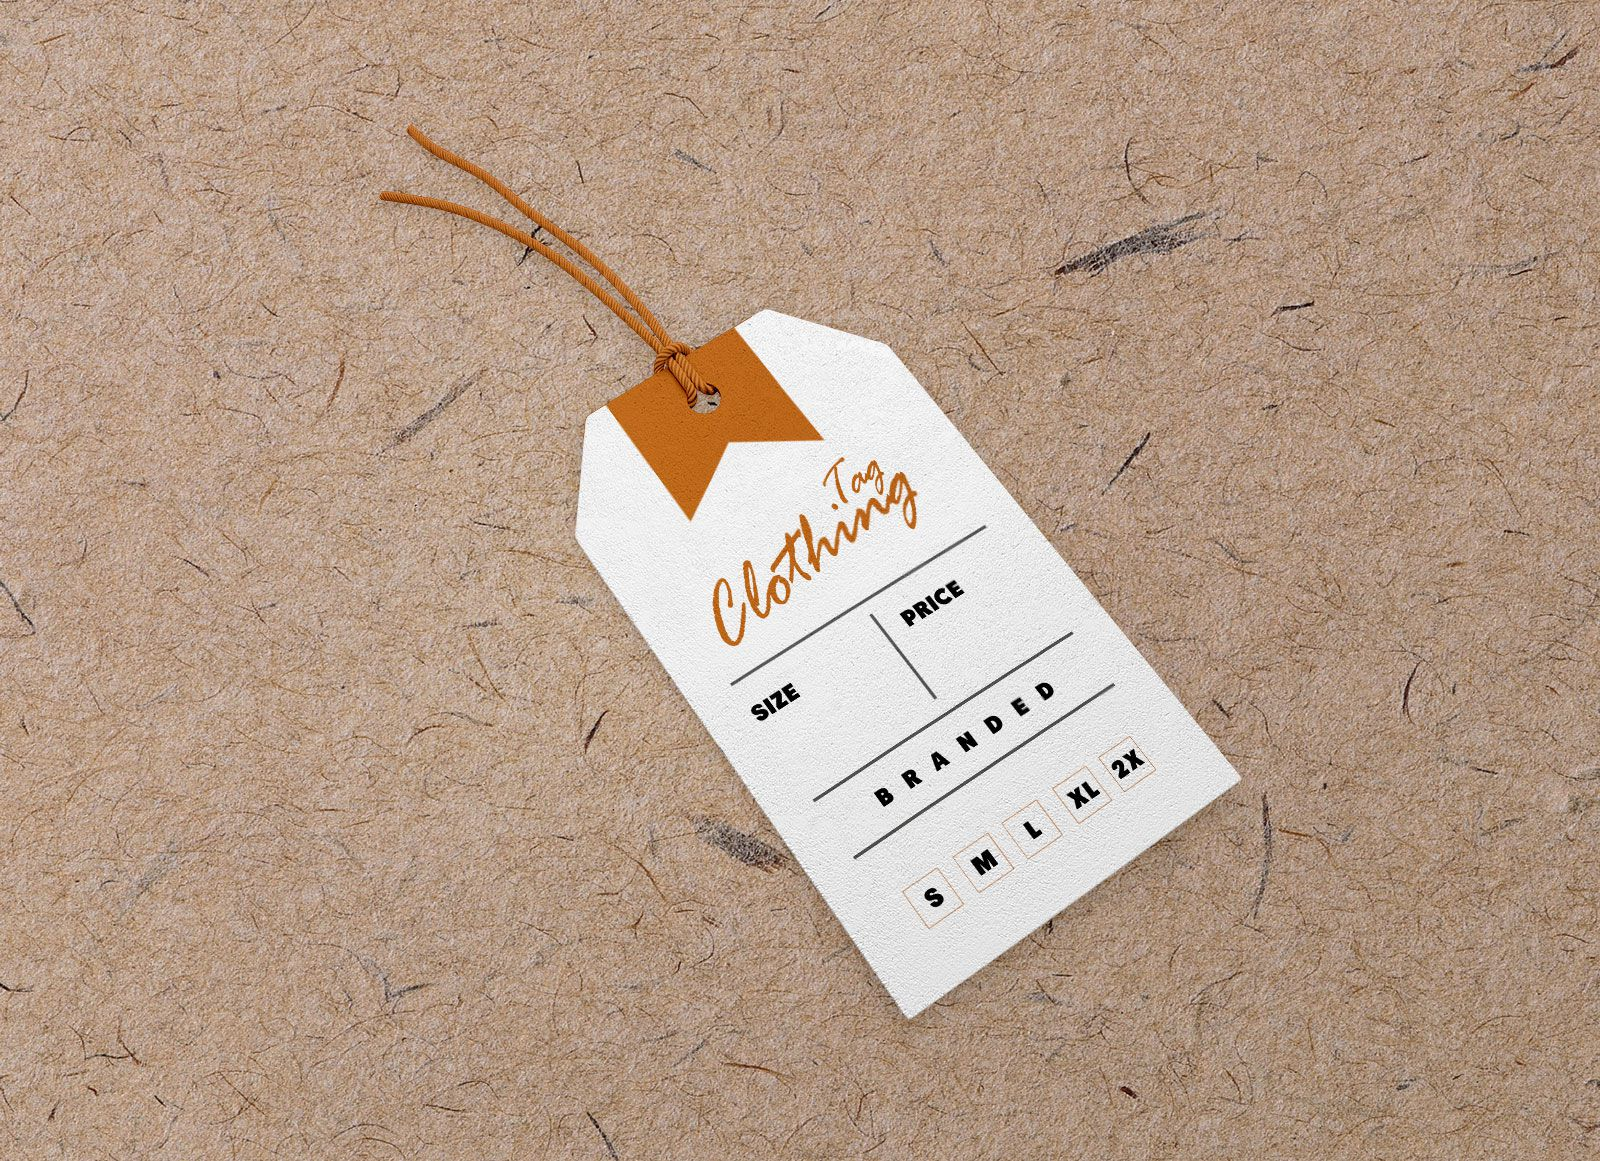 008 Frightening Free Clothing Label Design Template Image  Templates DownloadFull